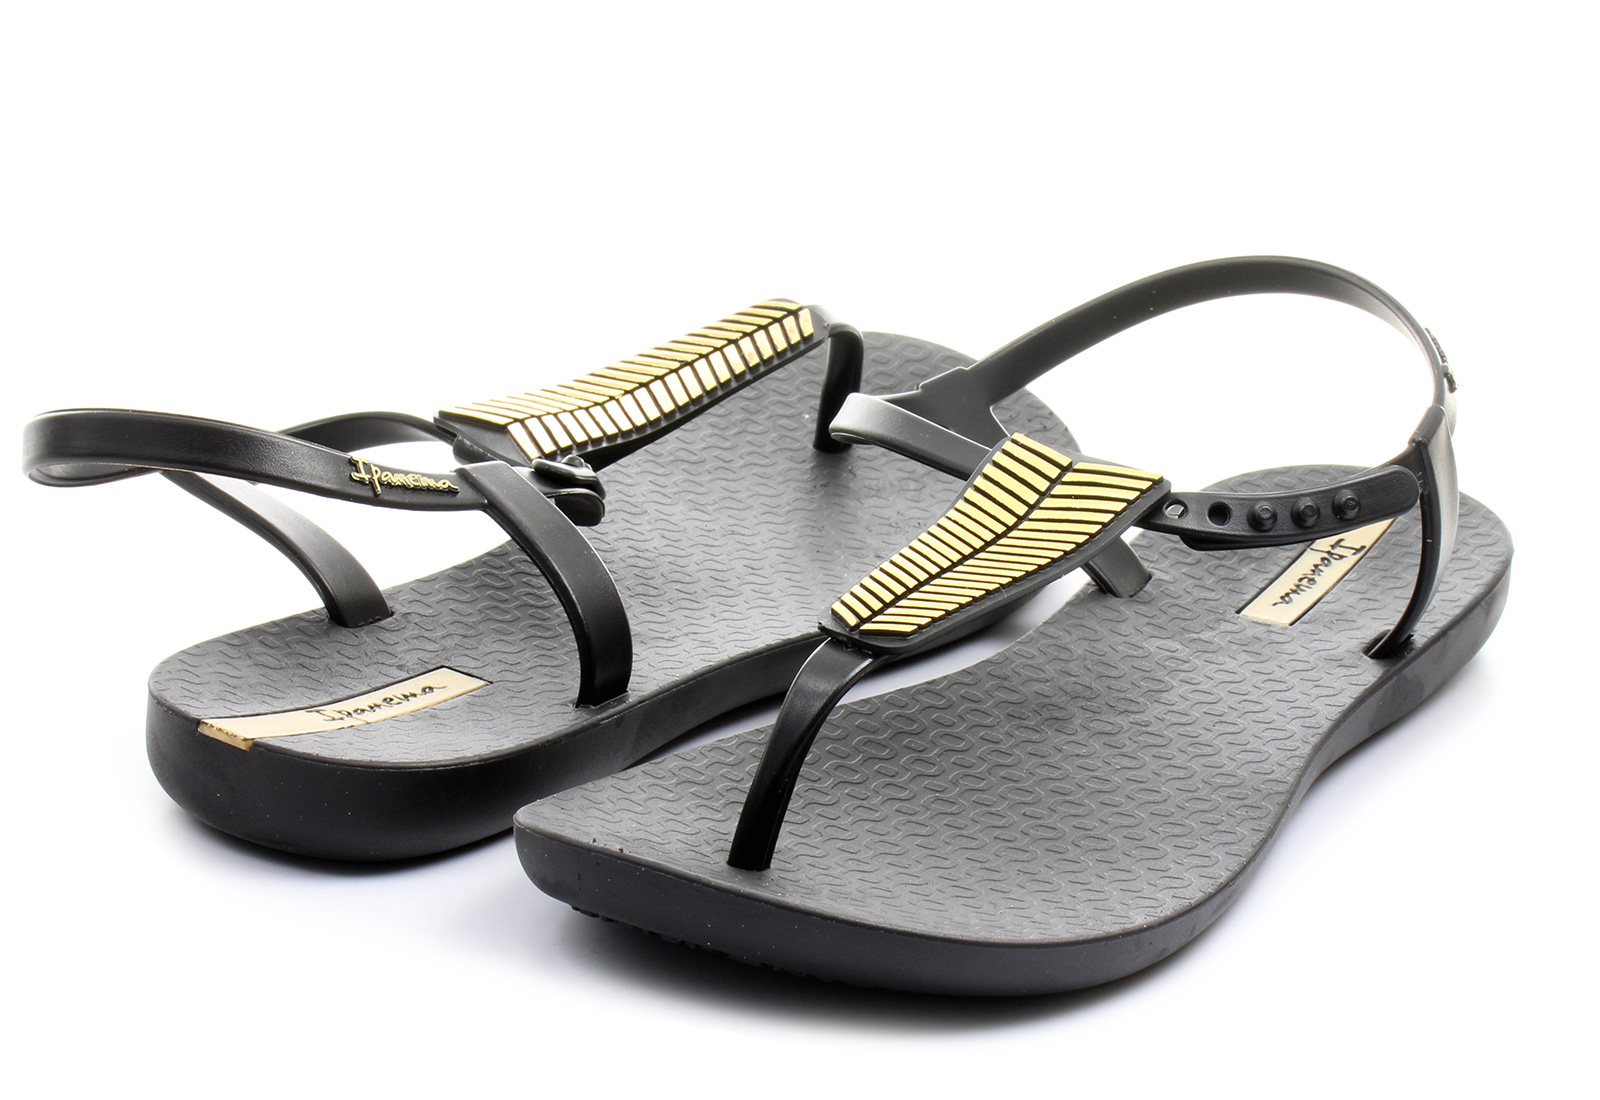 00cd7172b73e0c Ipanema Sandals - Charm Sandal Ii - 81458-23480 - Online shop for ...